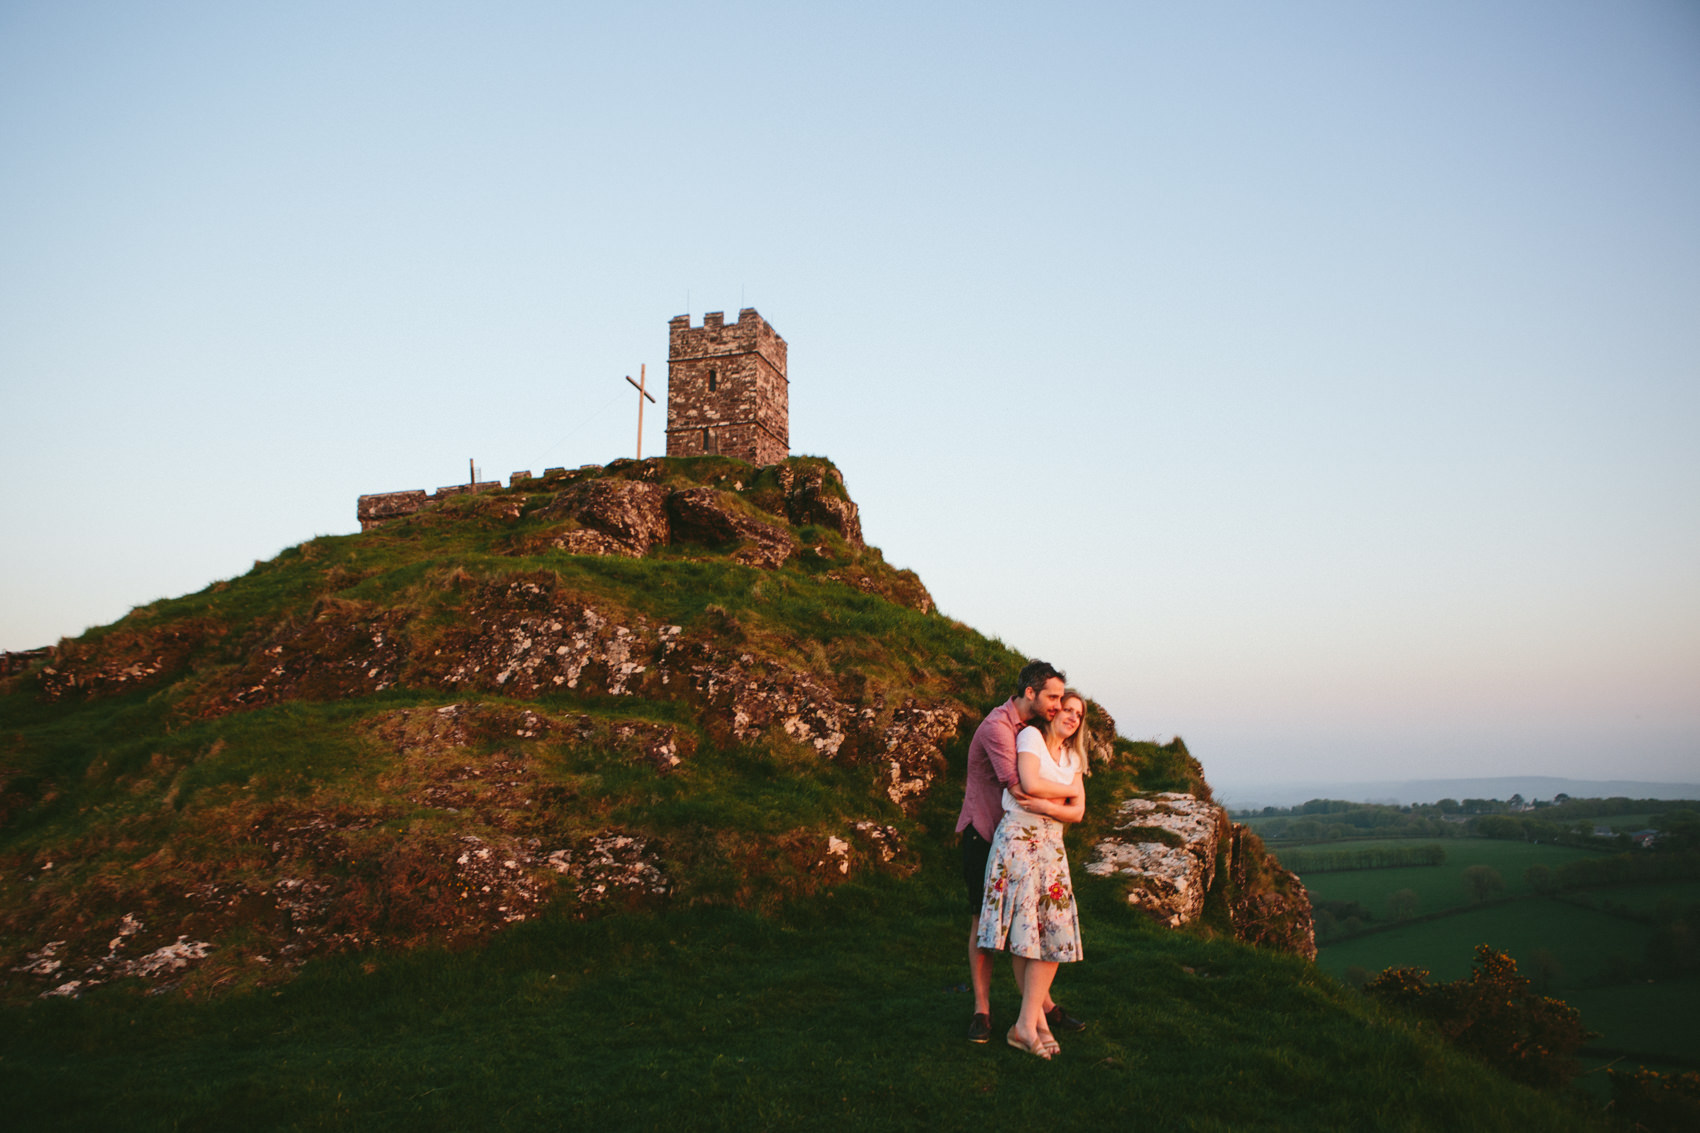 Engagement Adventures | Devon Wedding Photographer. Brentor Engagement, Brentor wedding, Brentor Church